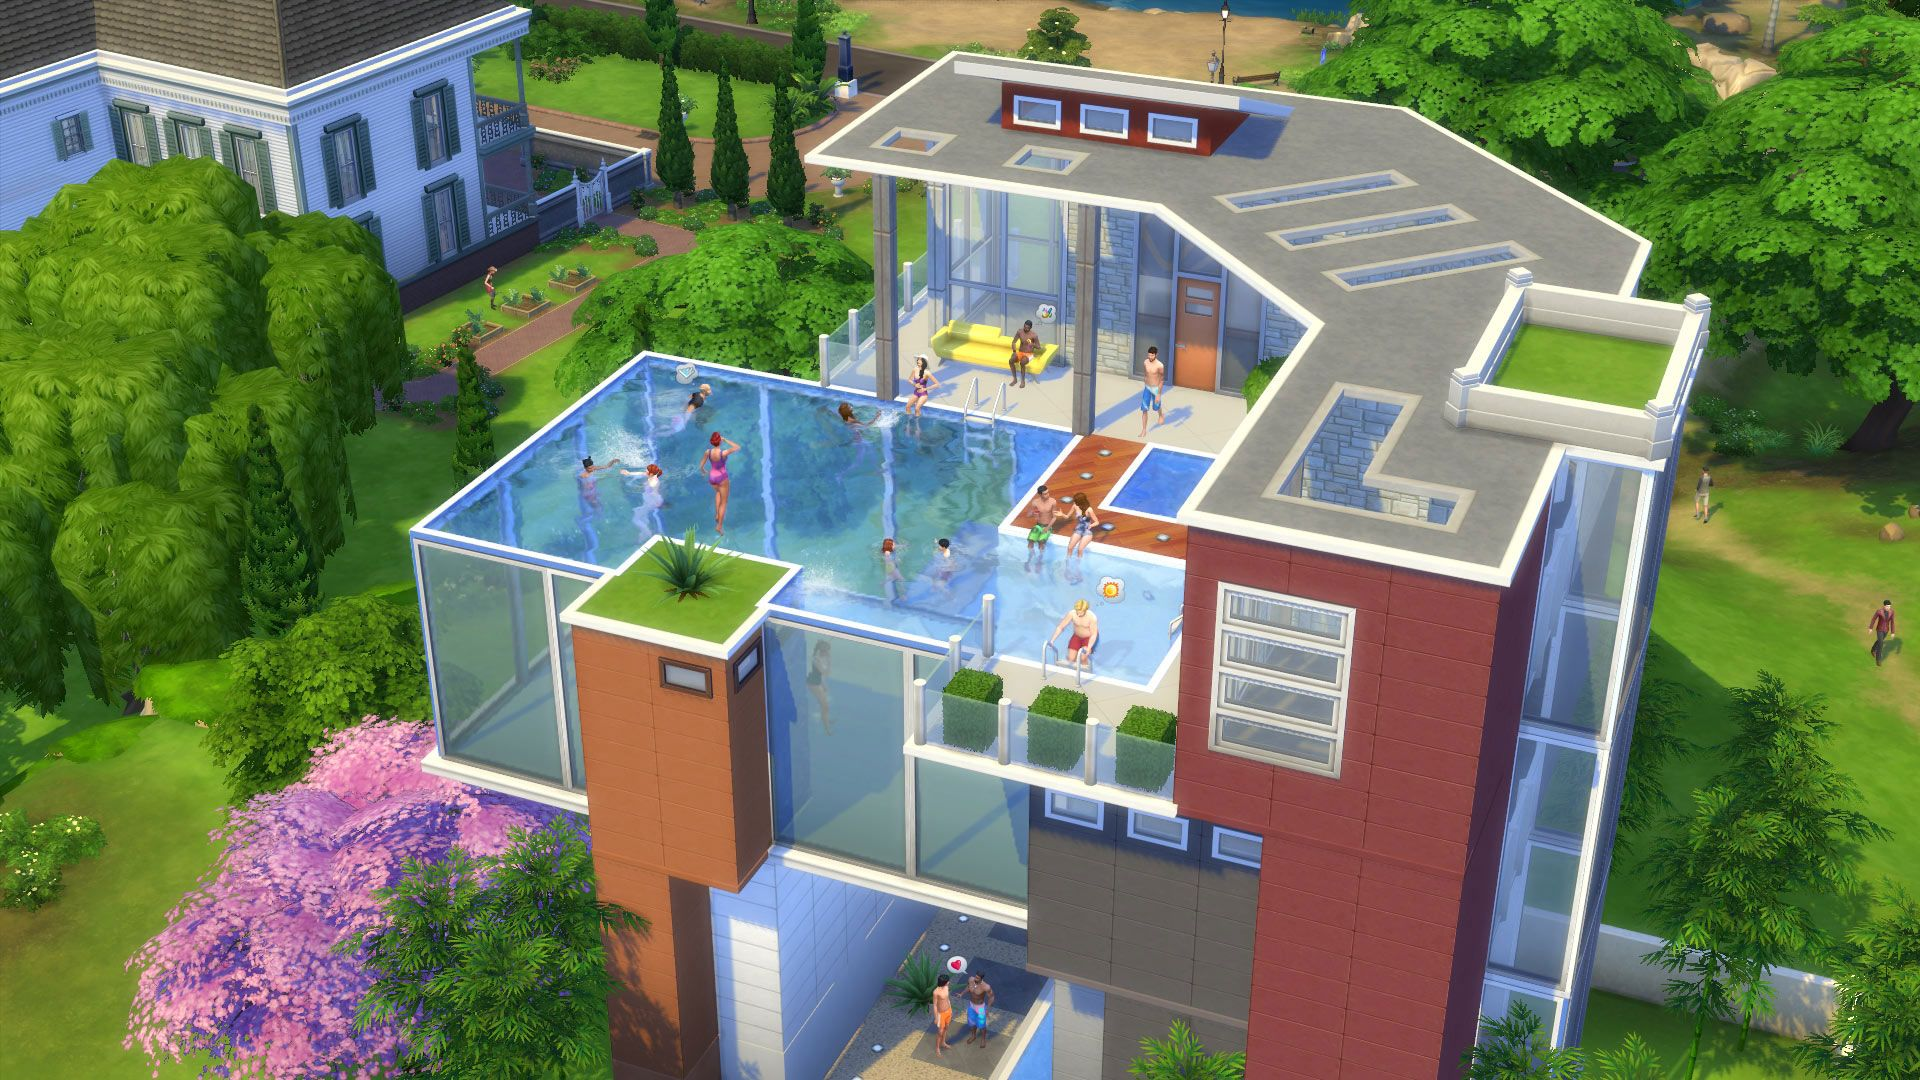 The Sims 4 Media An Official Ea Site Sims 4 Houses Sims House Sims